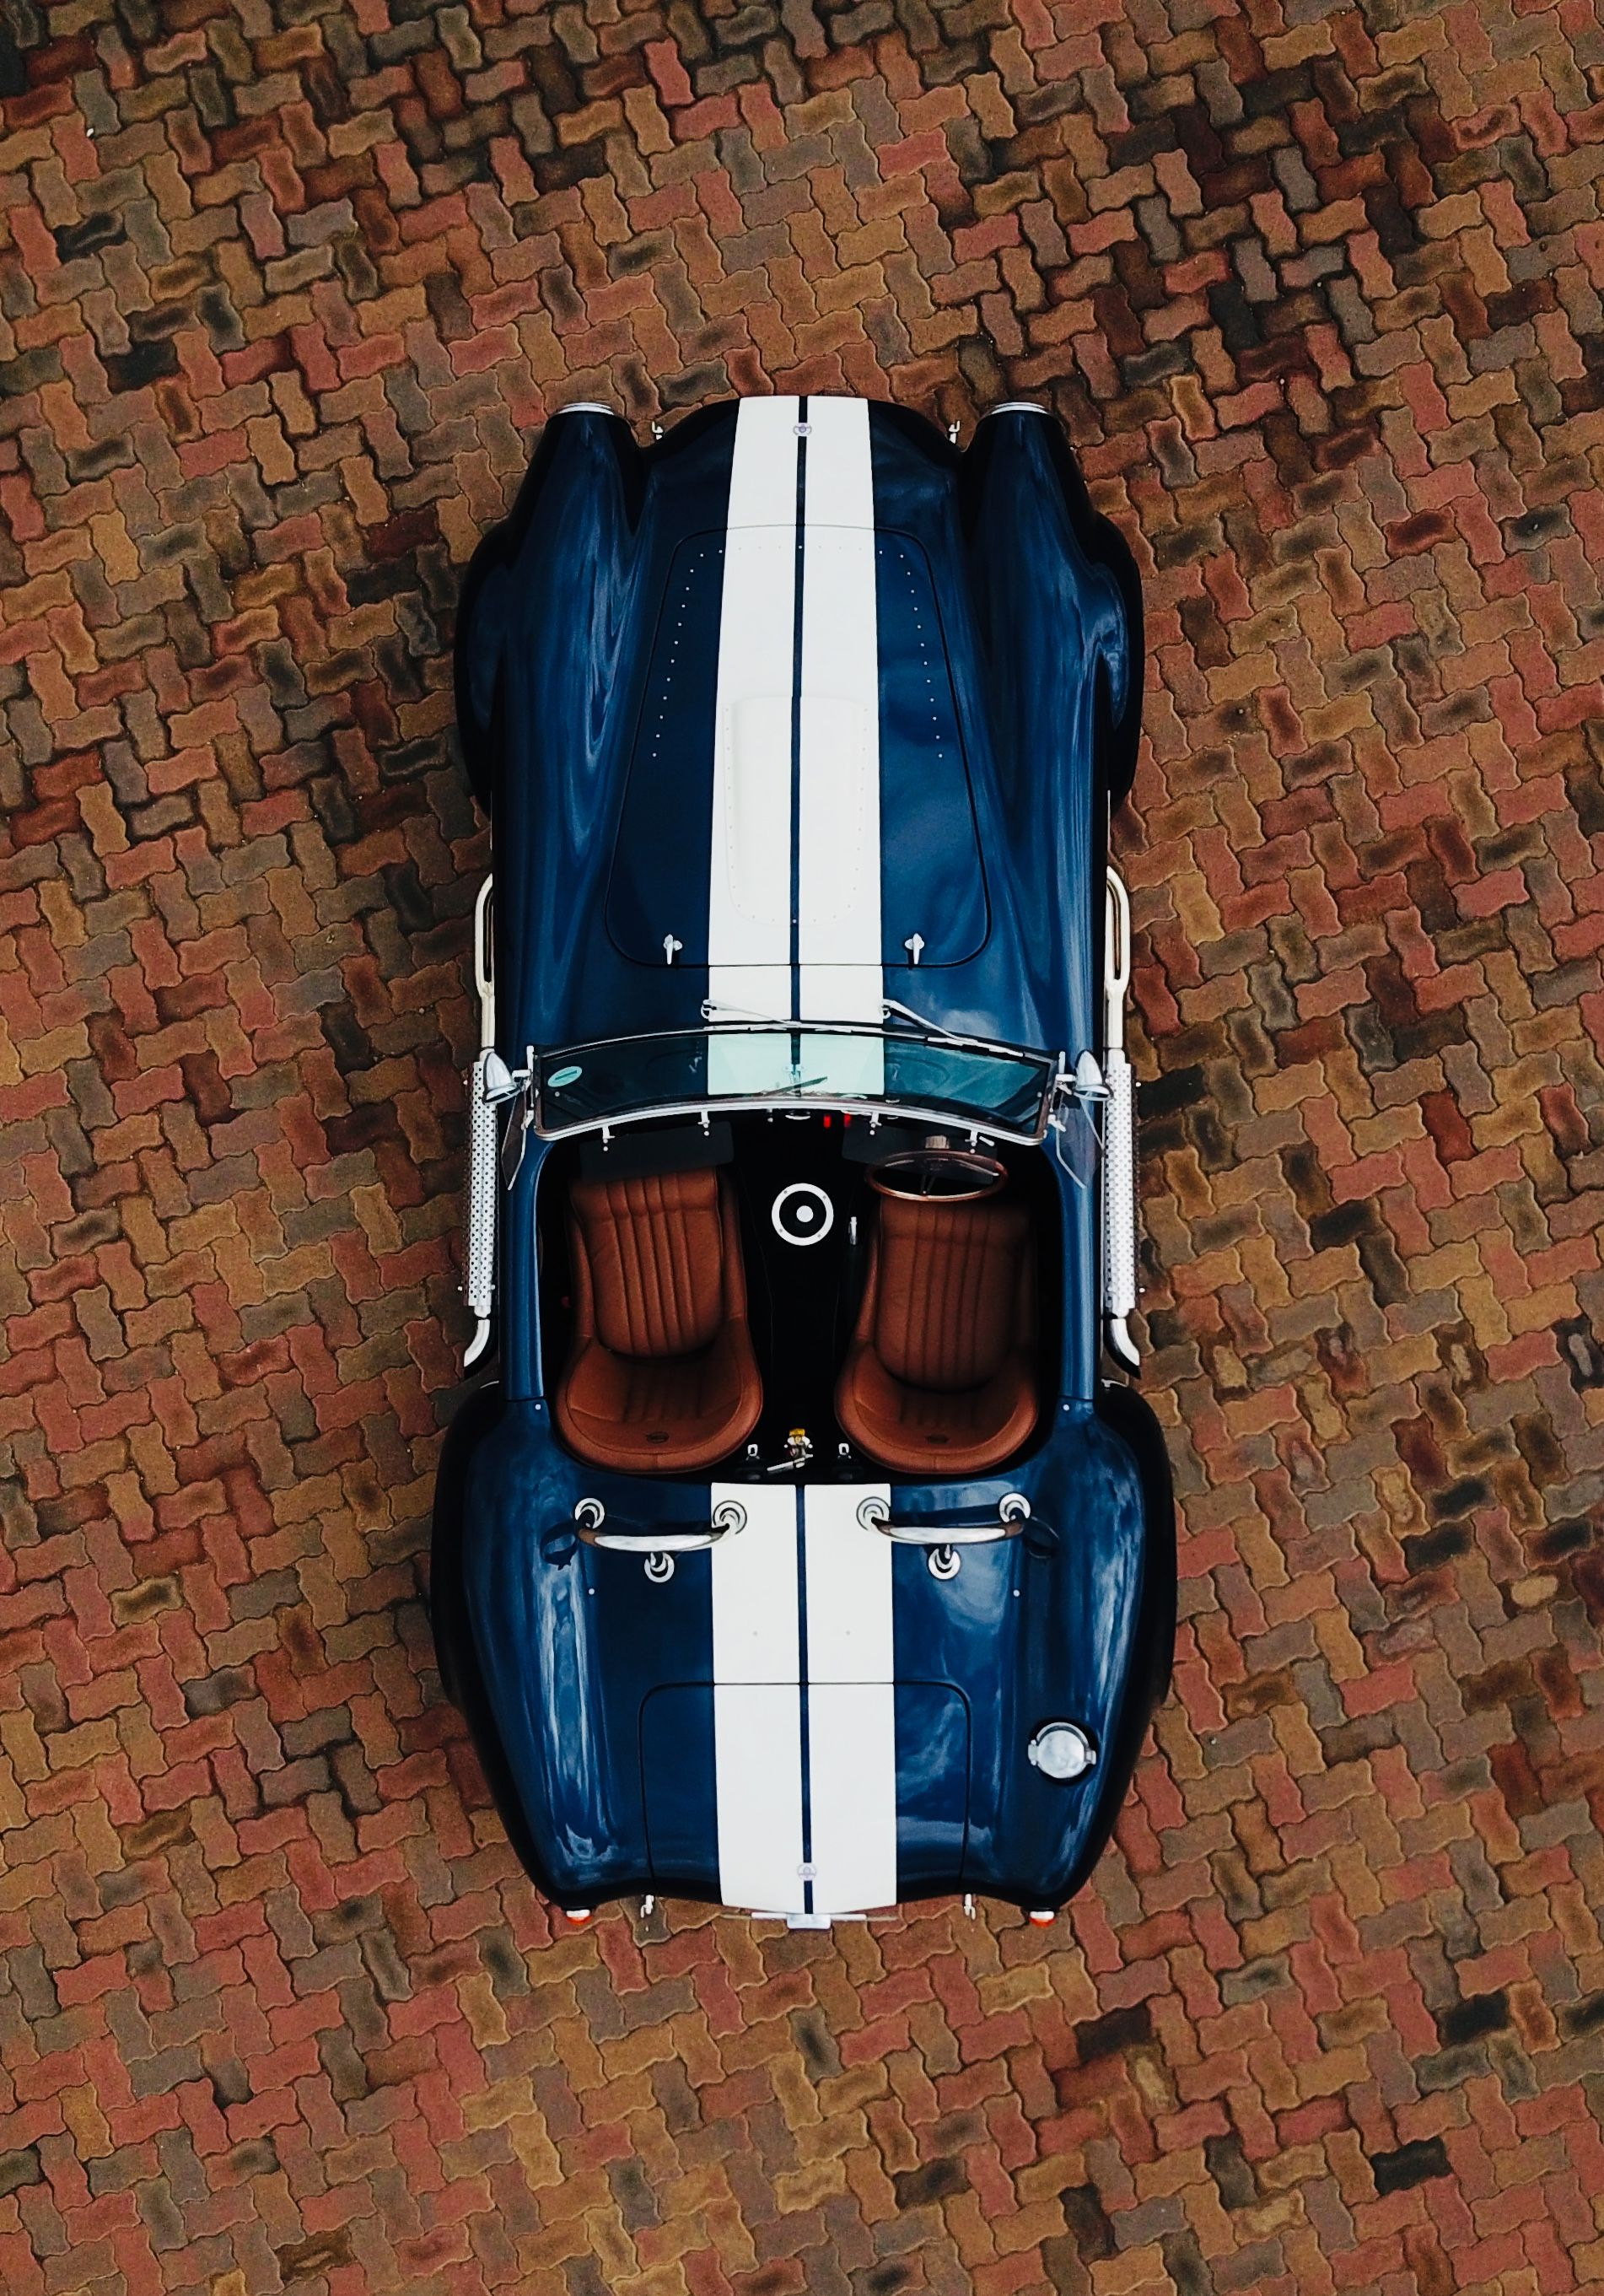 Backdraft Rt3 Cobra Indigo Blue With Wimbledon White Stripes Amaro Brown Leather Seats Black Interior Carpeting Shelby Cobra Shelby Gt350r Baby Car Seats